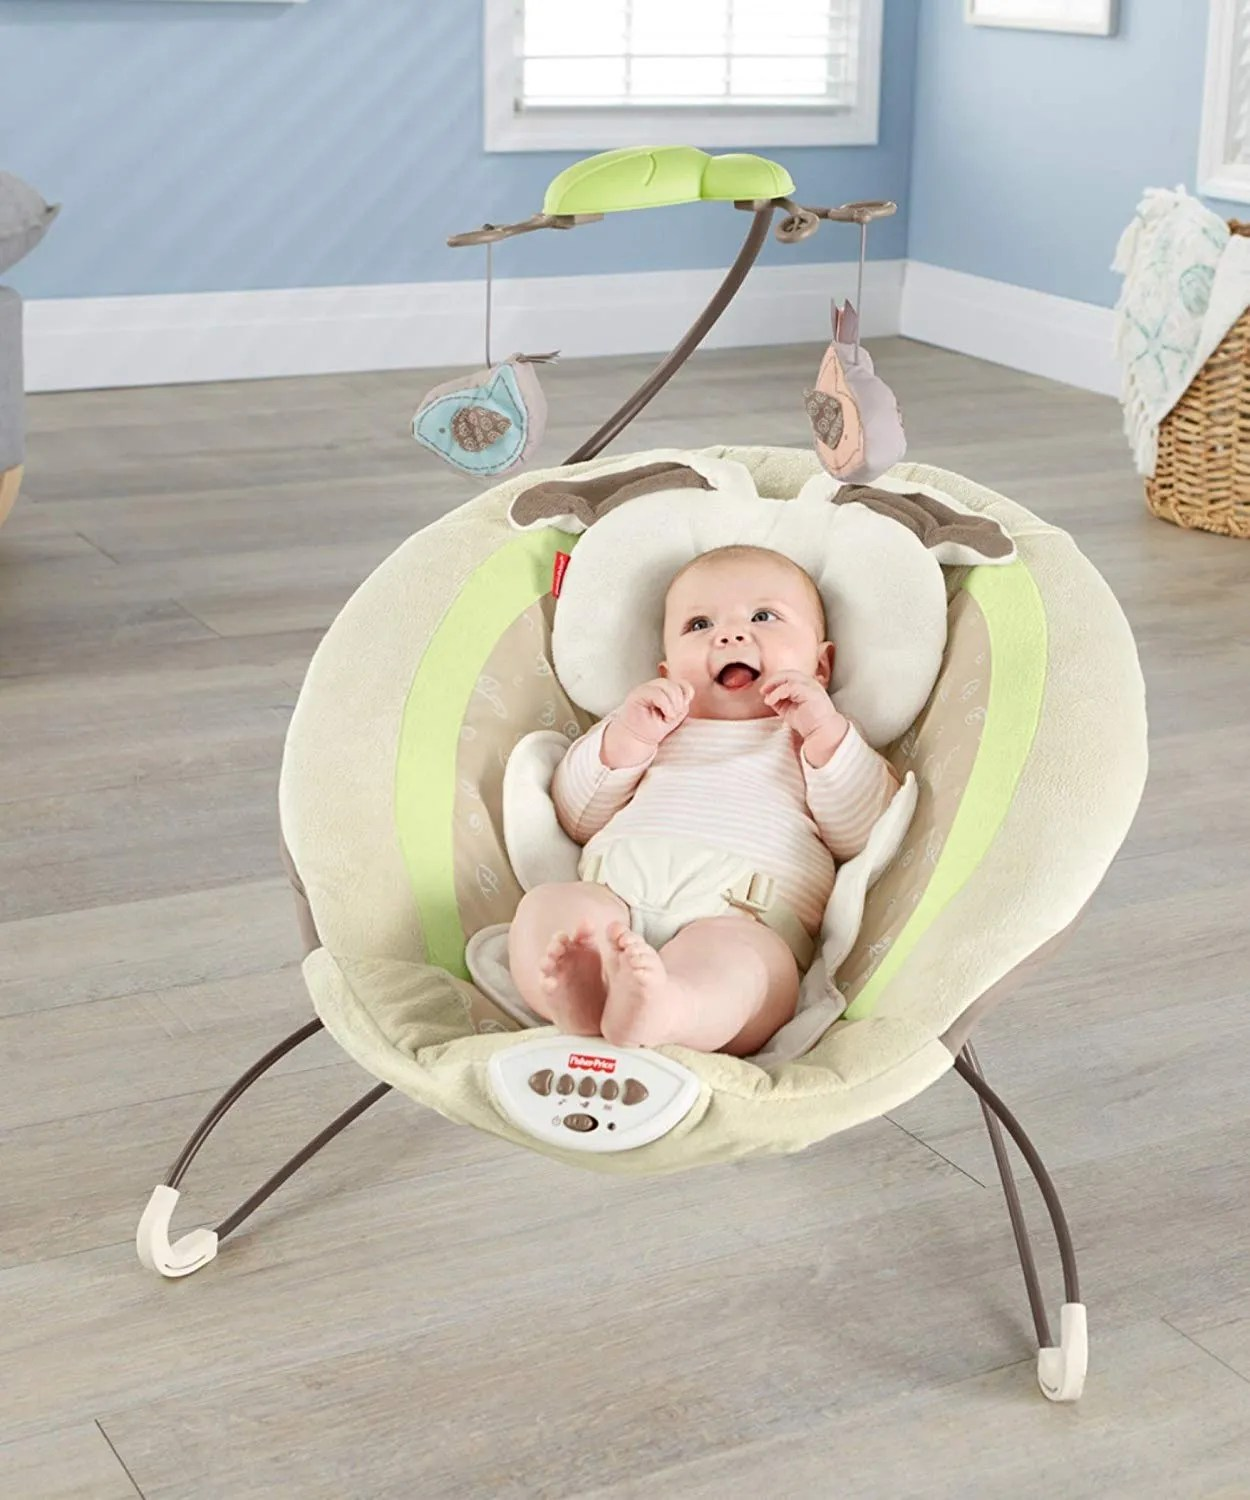 Bouncer Baby 9 Best Baby Bouncers According To Reviewers 2019